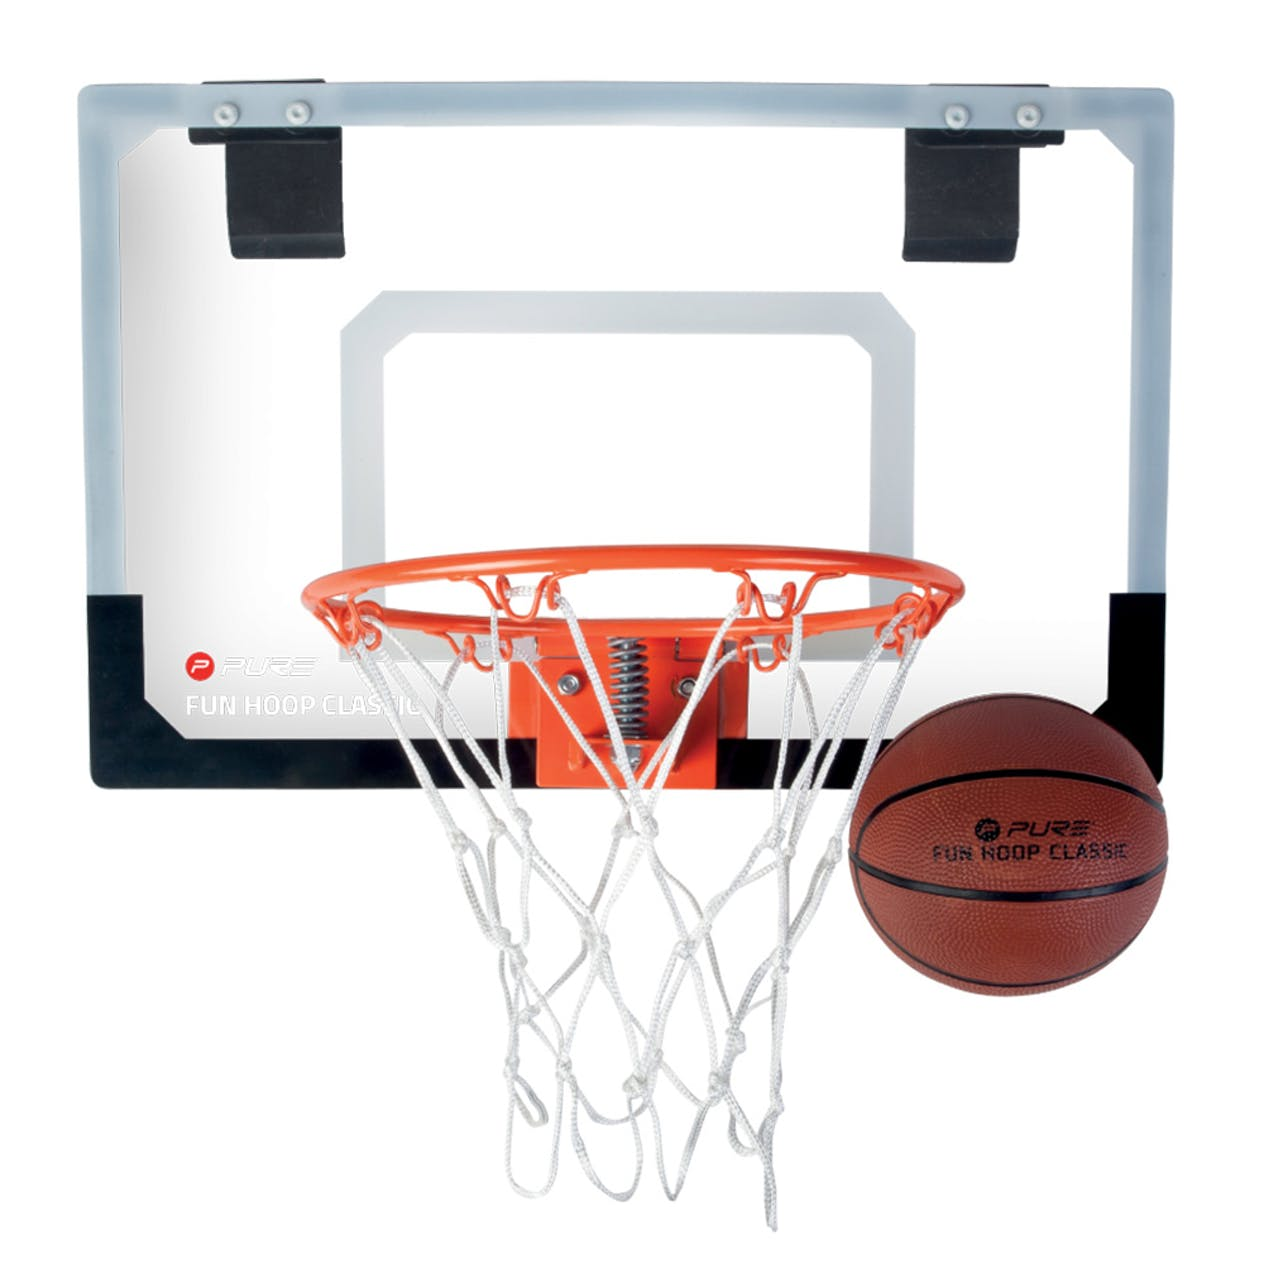 Basketkorg Pure 2Improve Fun Hoop Small GyP2I100200 e6229688b9560